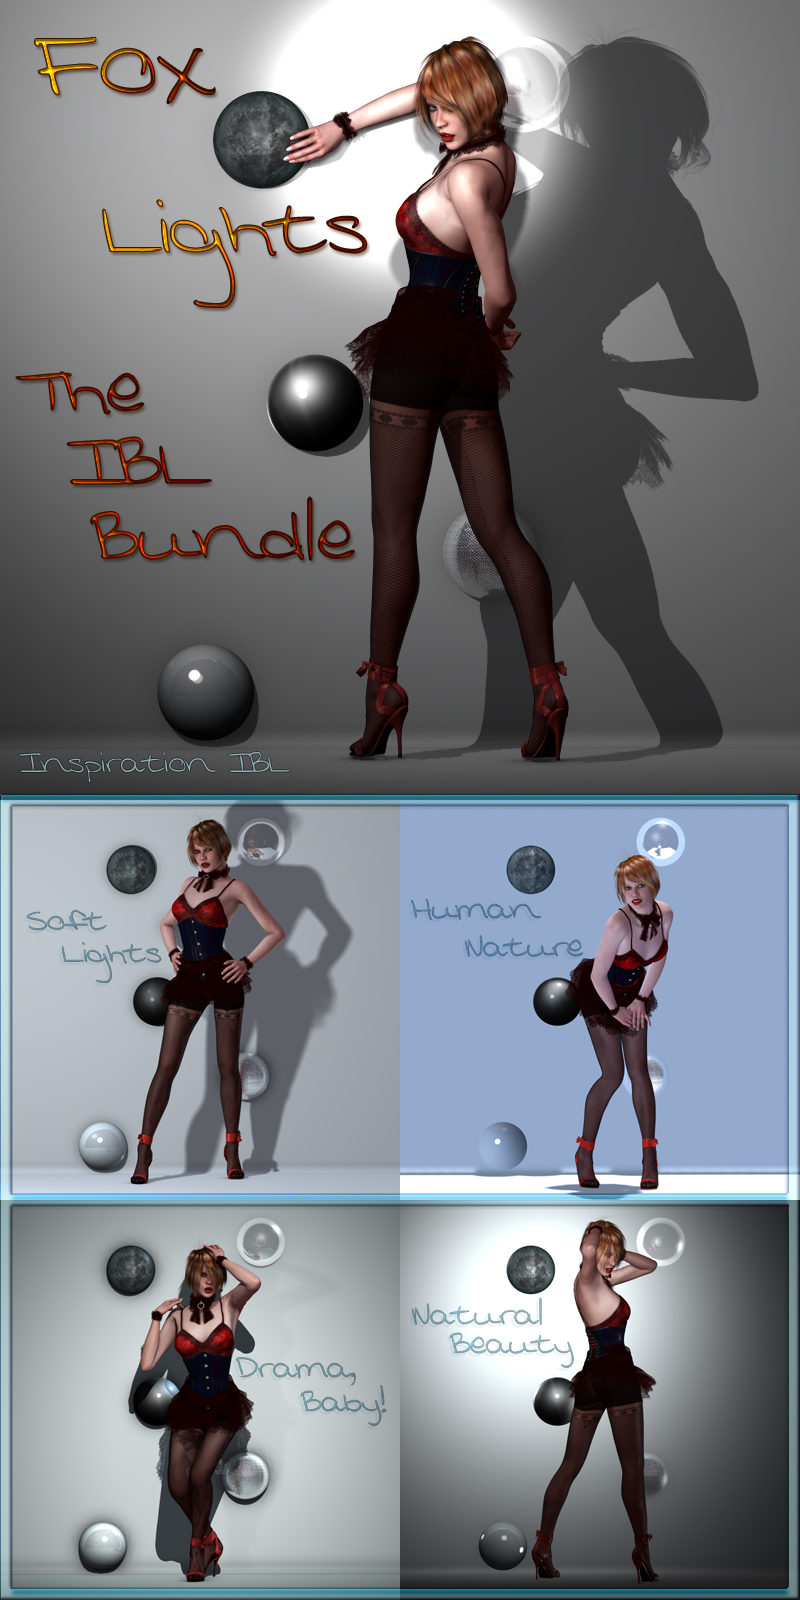 Fox Lights - IBL Bundle